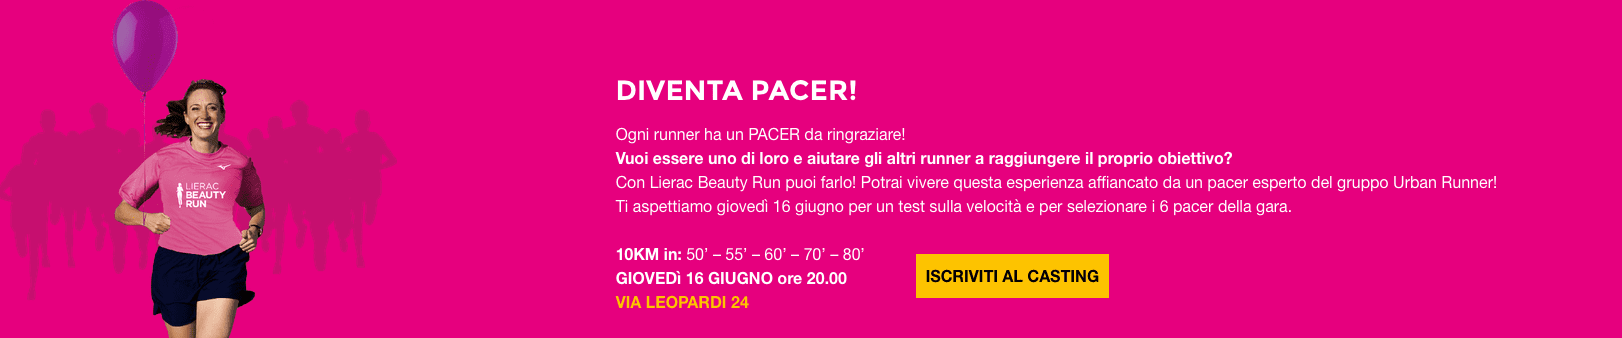 pacer2